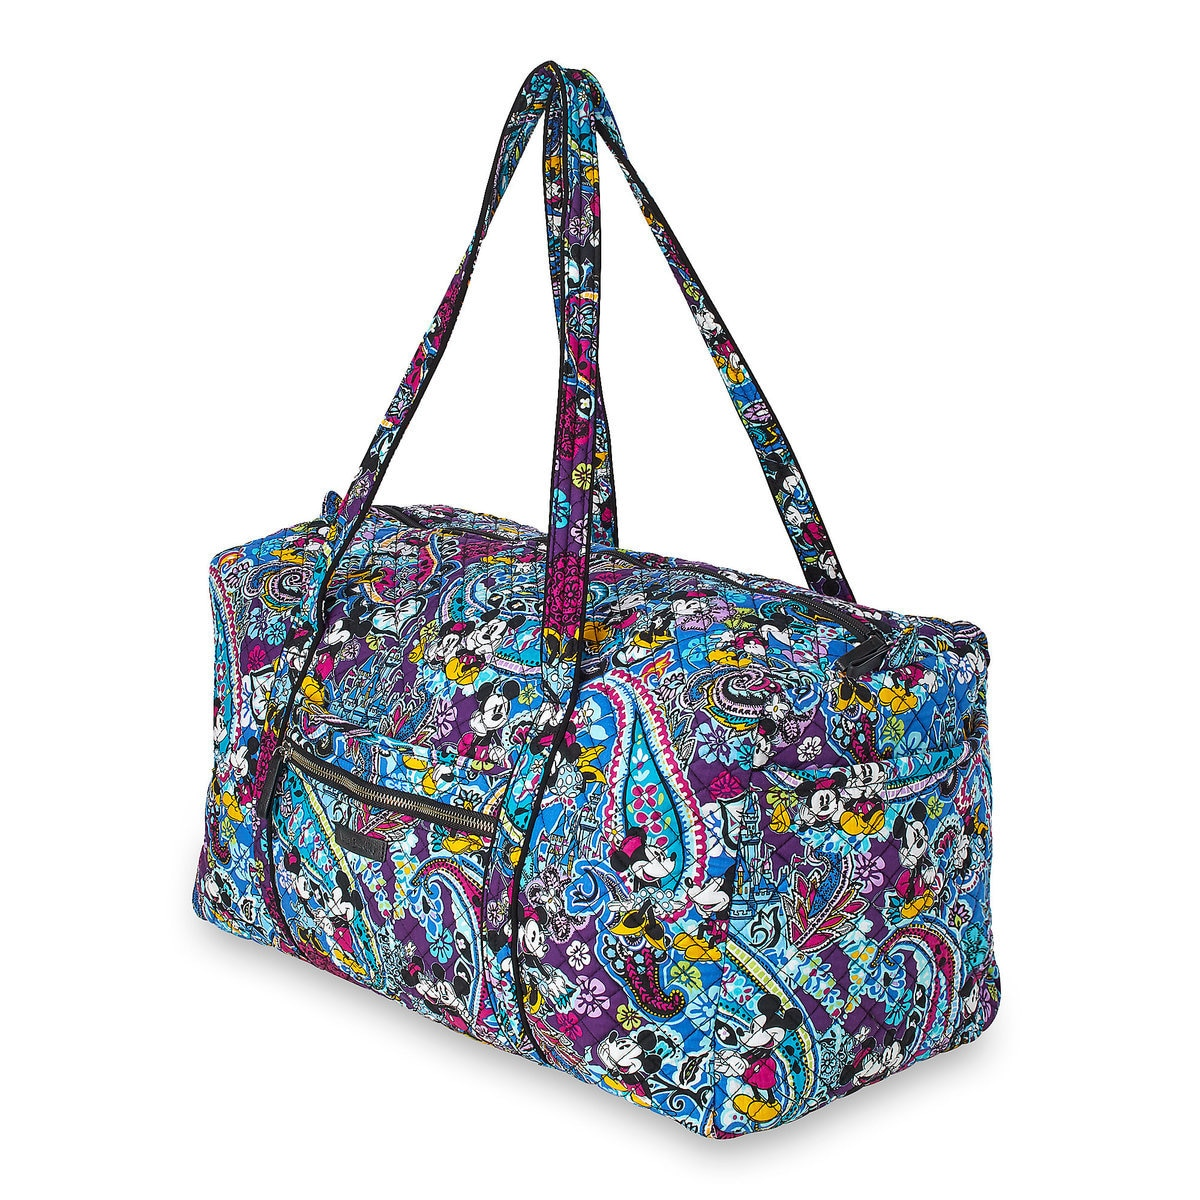 Vera Bradley Mickey and Minnie Paisley Duffel Bag